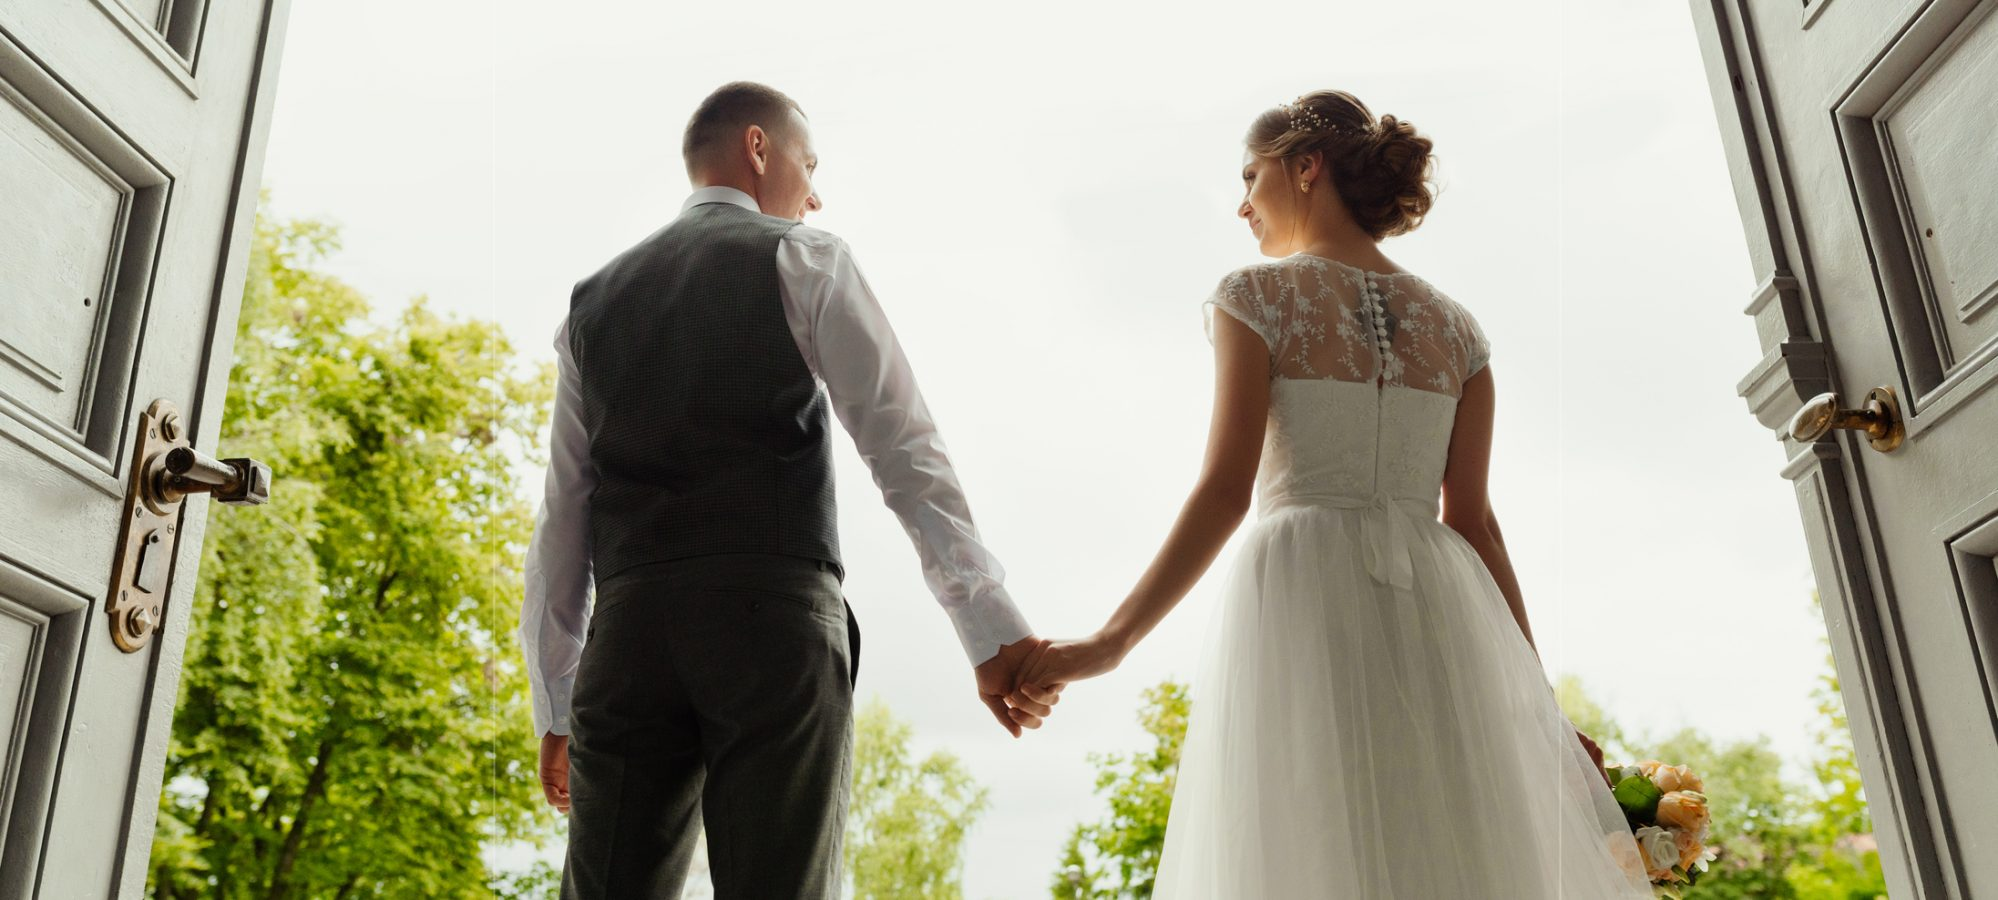 Image of bride and groom - newlyweds - standing against the background of cathedral exit and holding hands